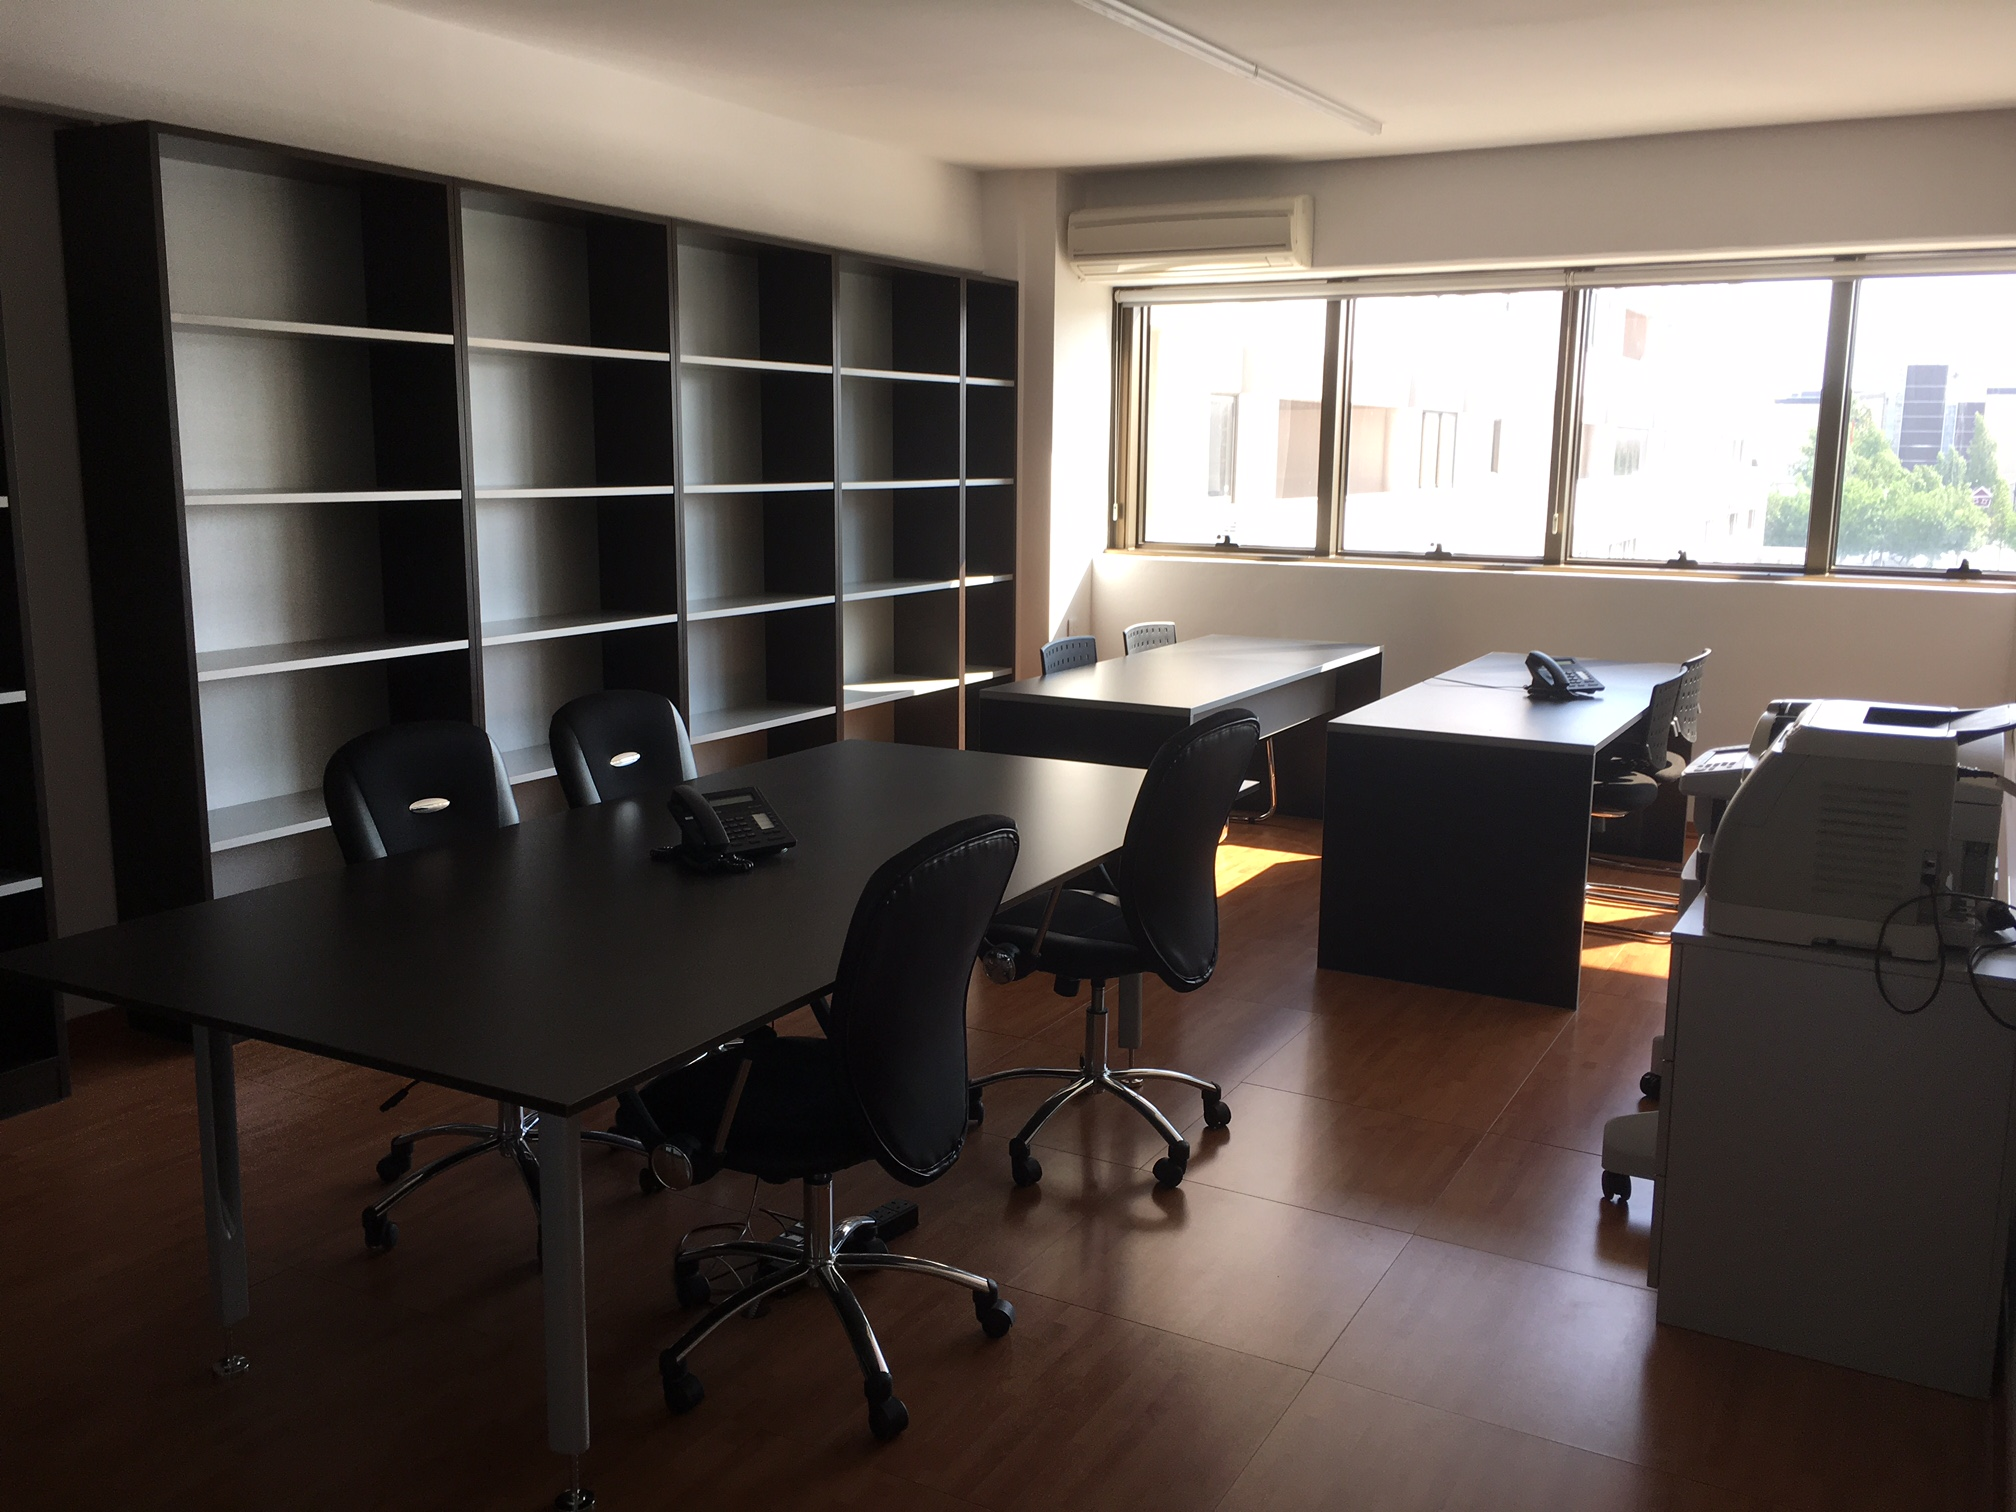 Office for sale in Engomi